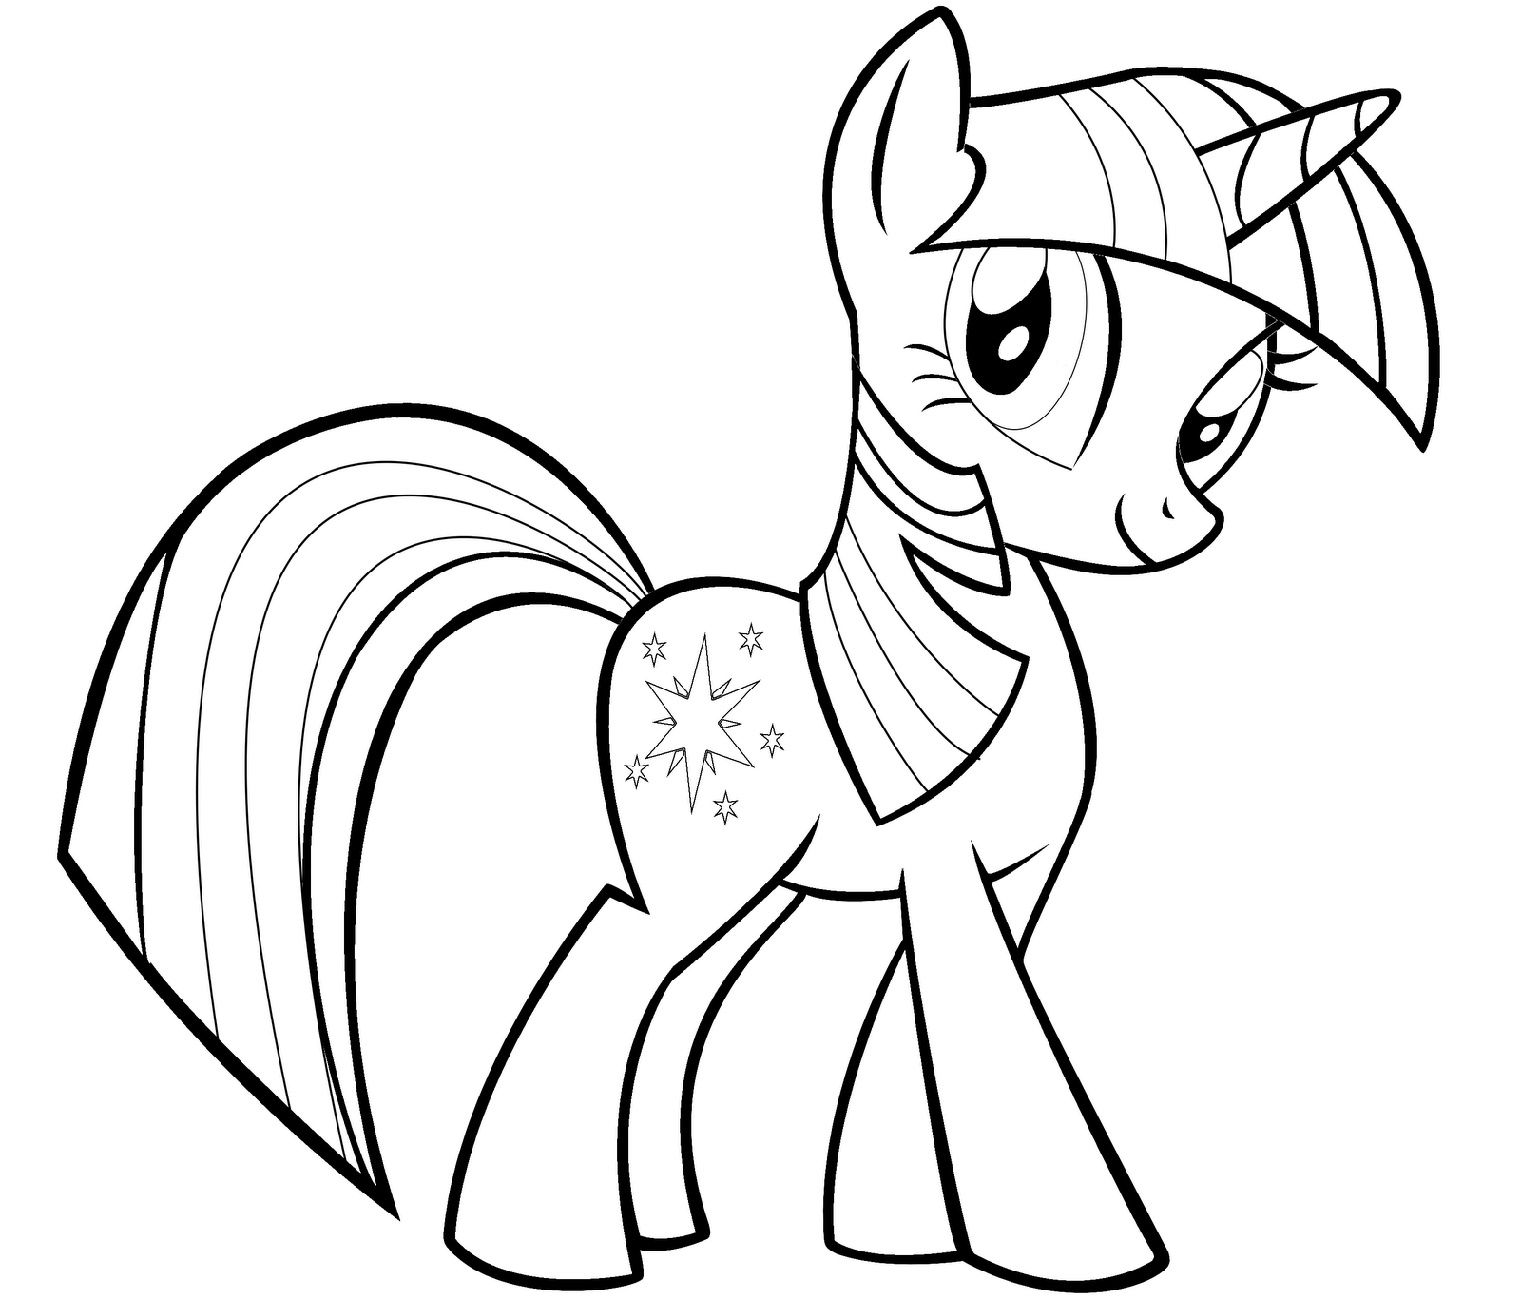 Alicorn Coloring Pages For Kids